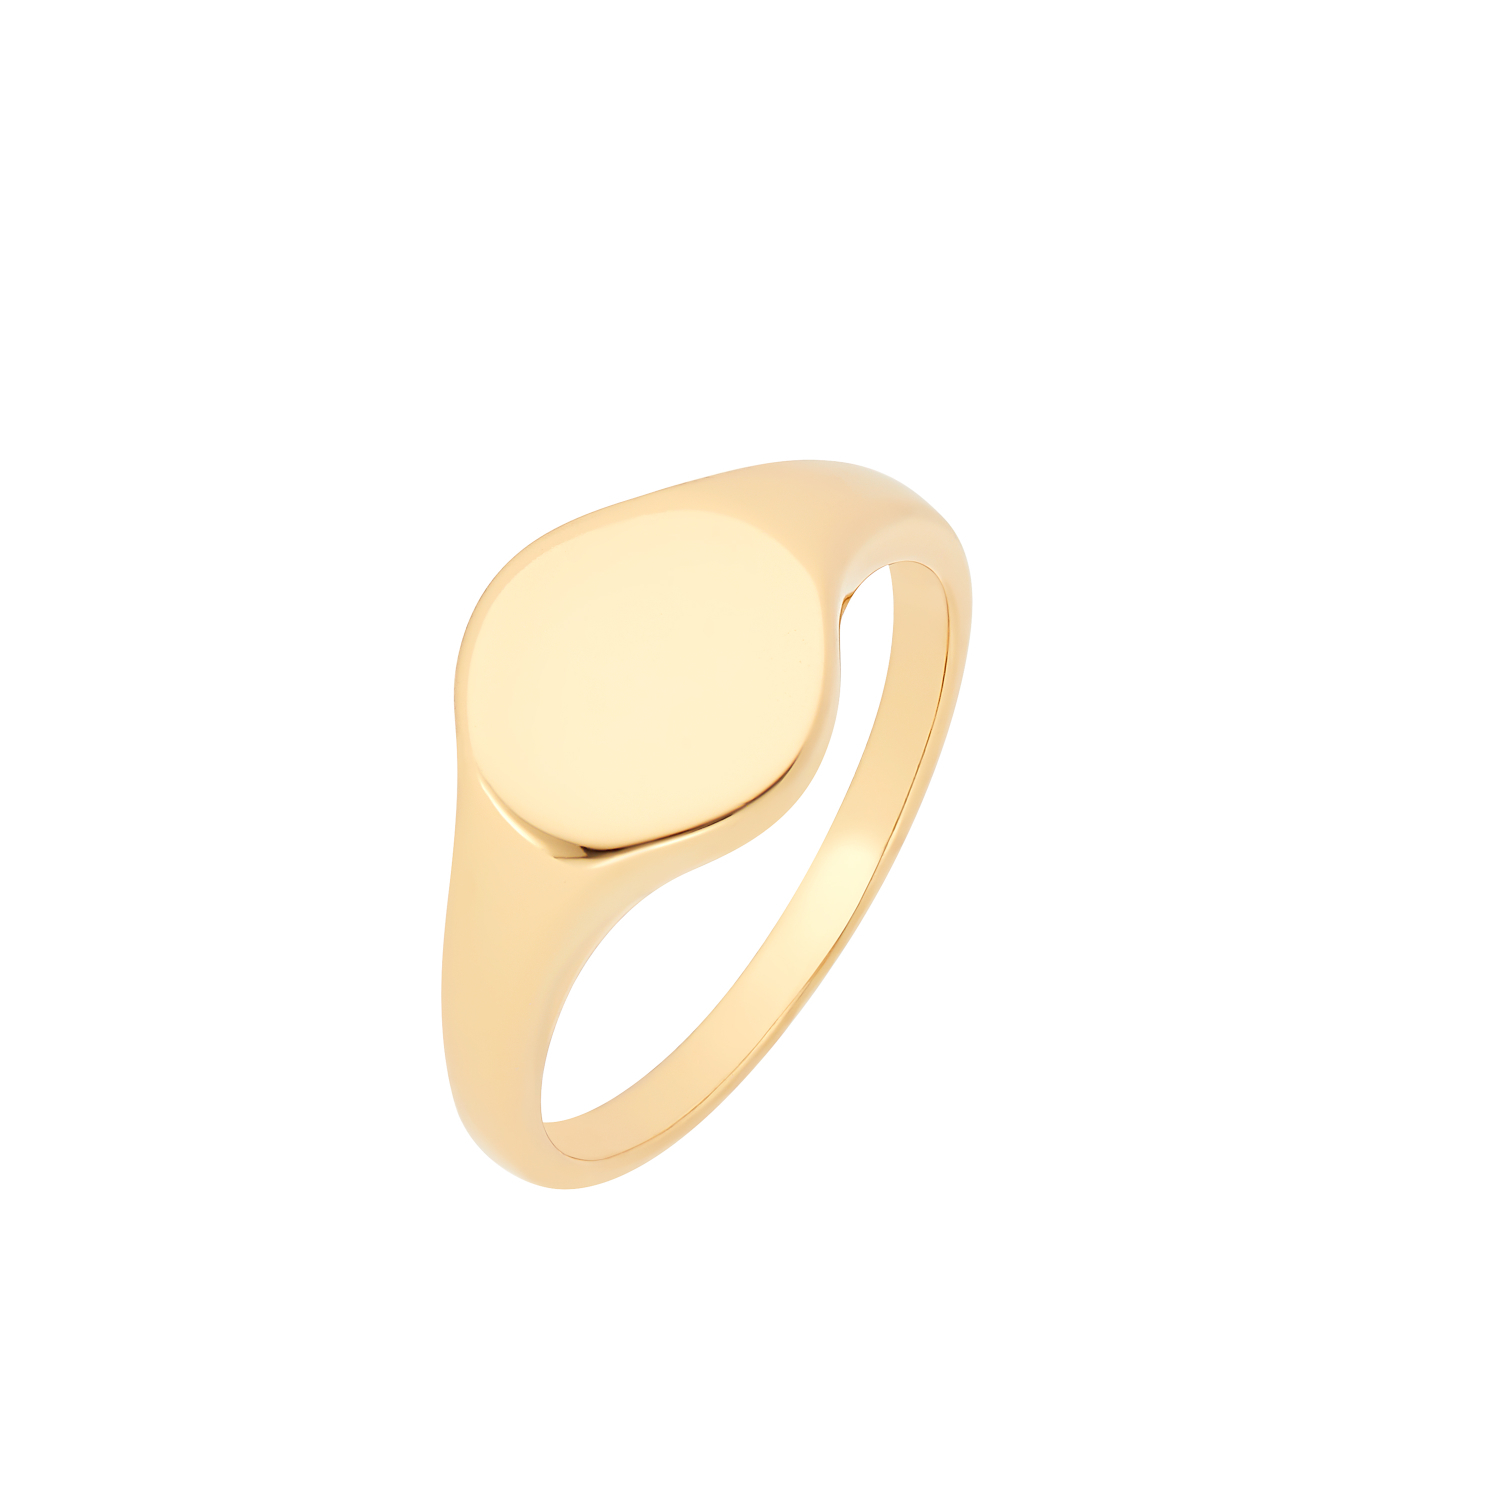 RING GOLD